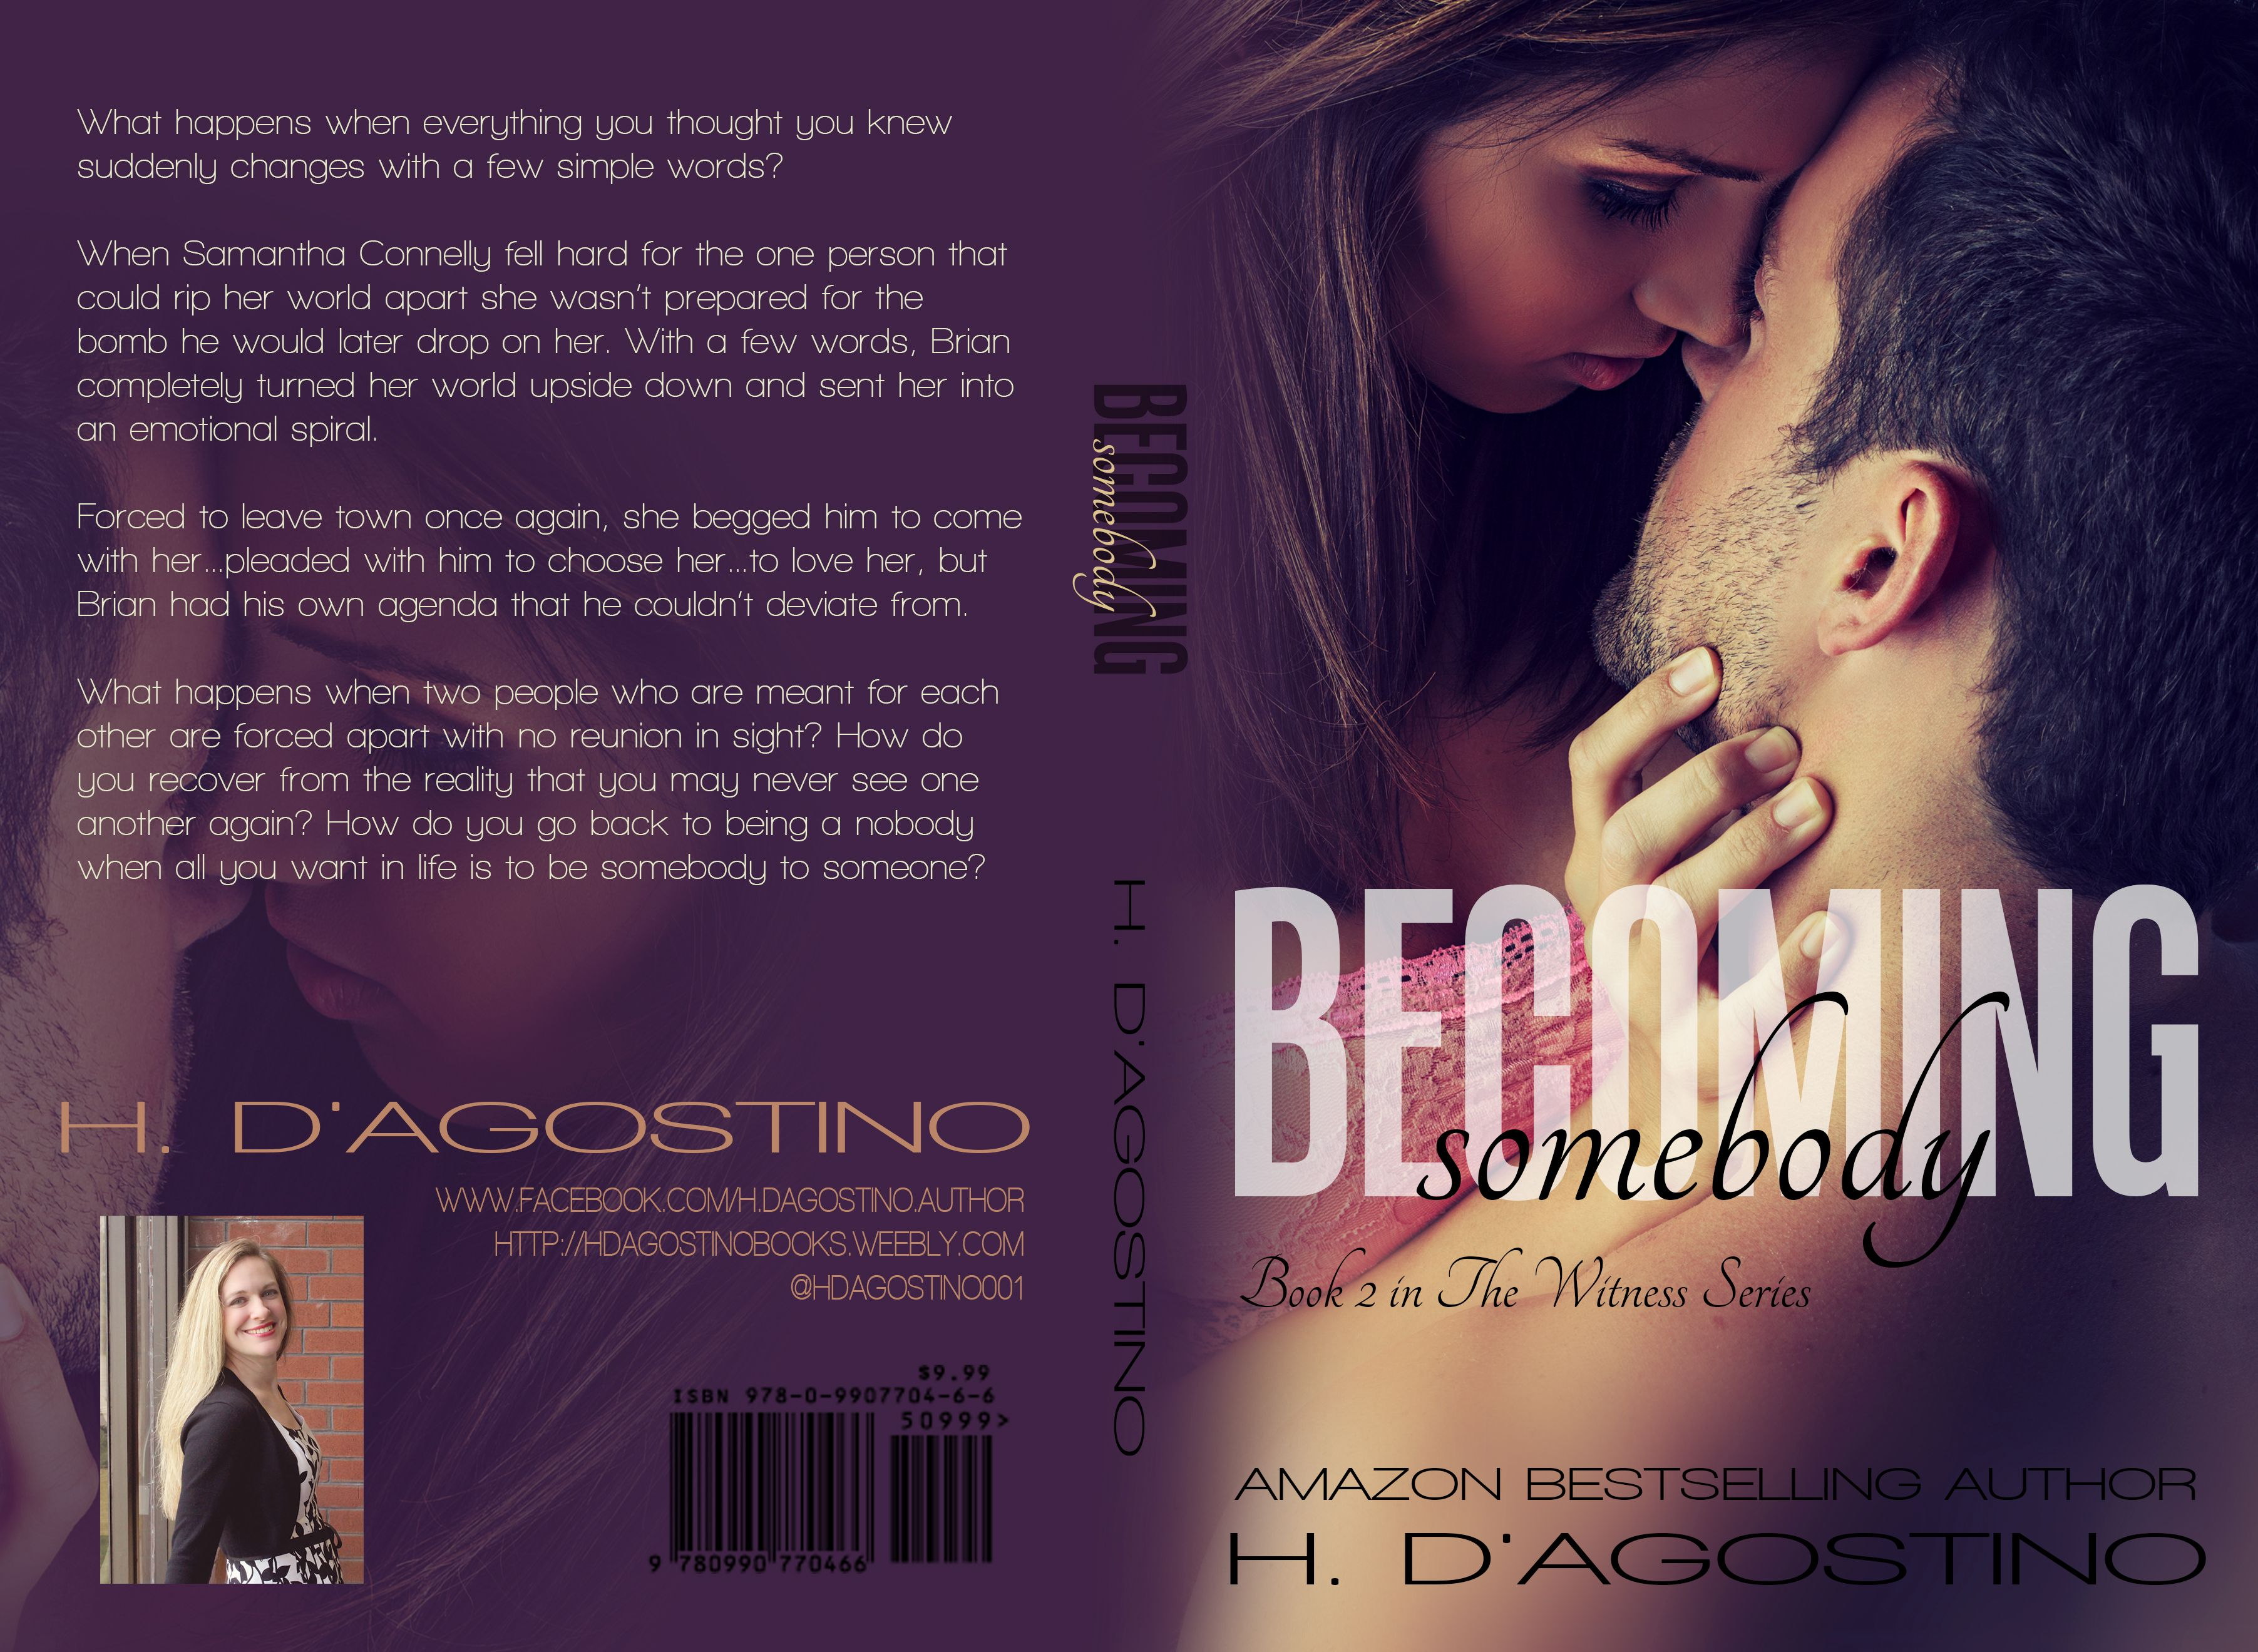 Heather D'Agostino - Becoming Somebody final cover